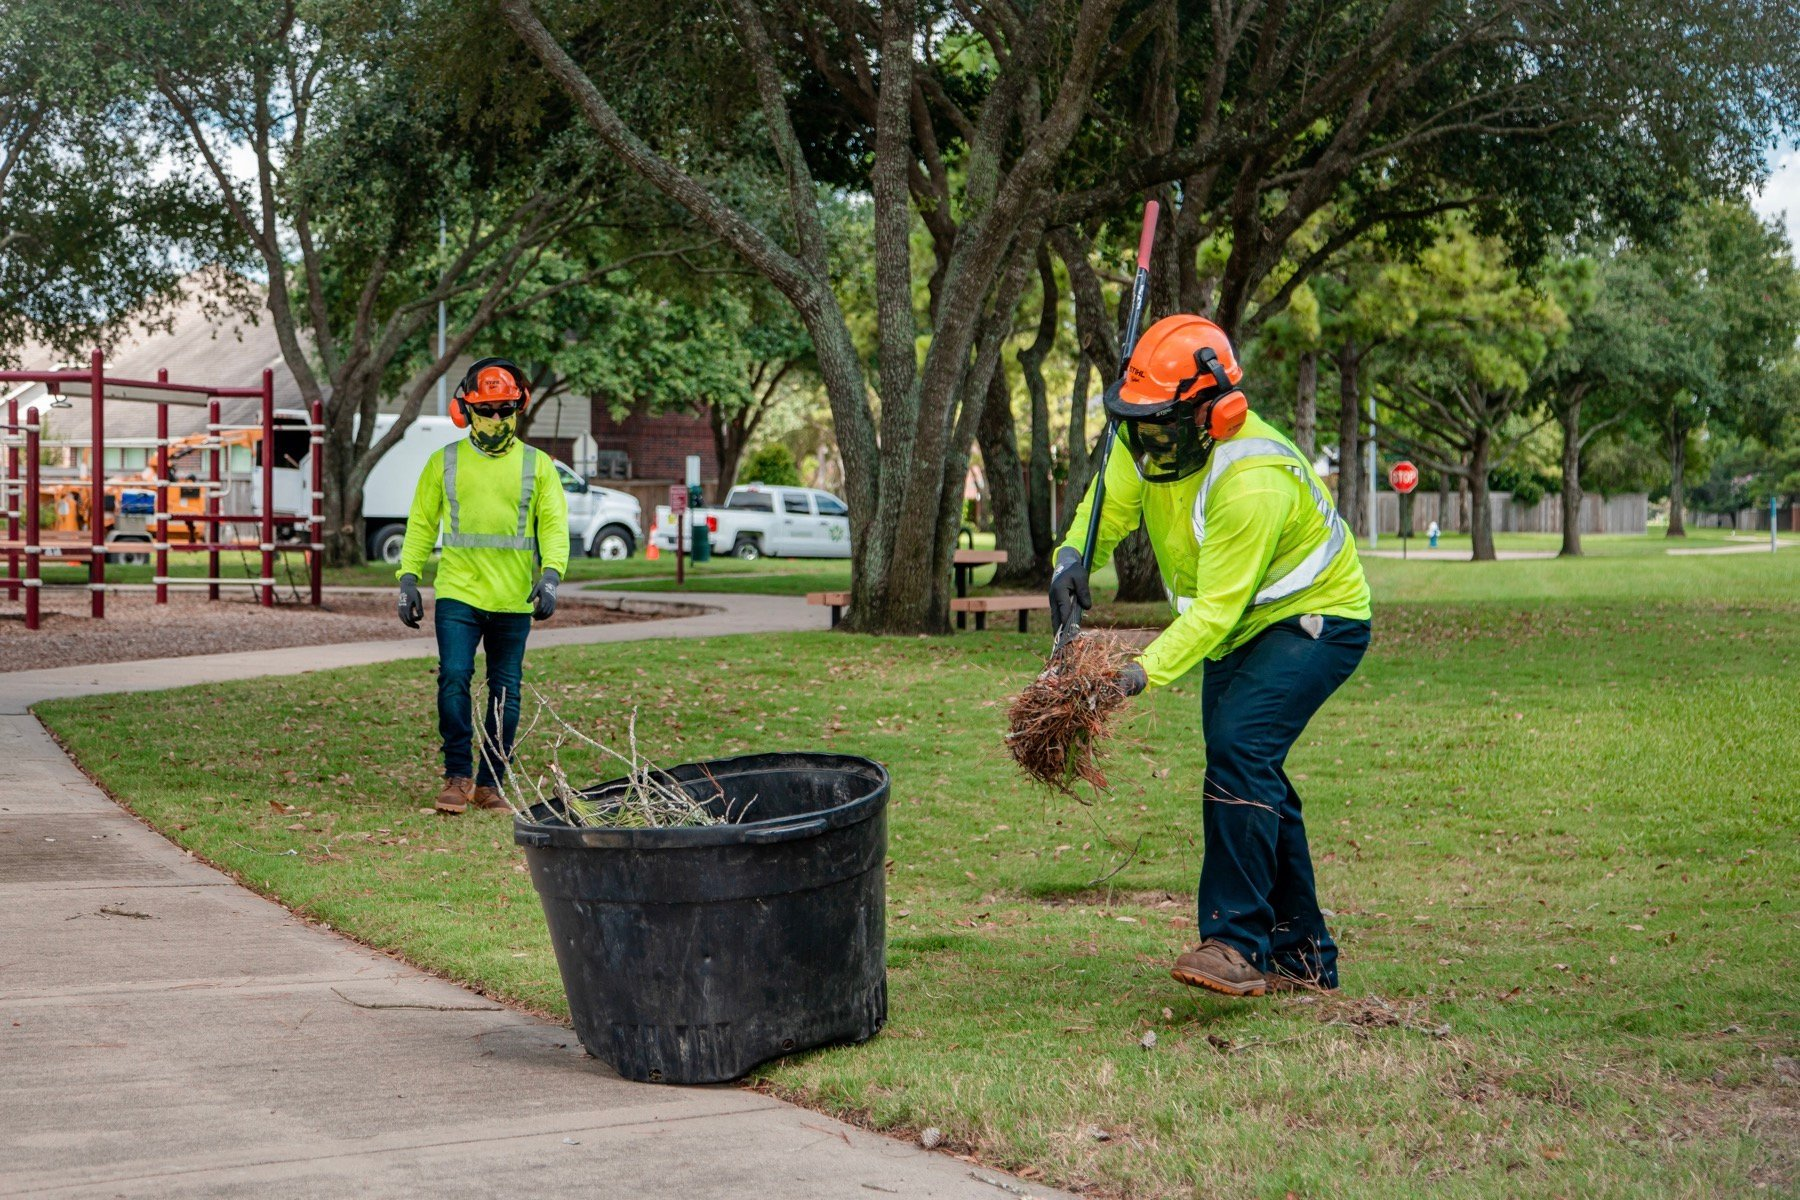 Maintenance crews cleaning up leaf and tree debris